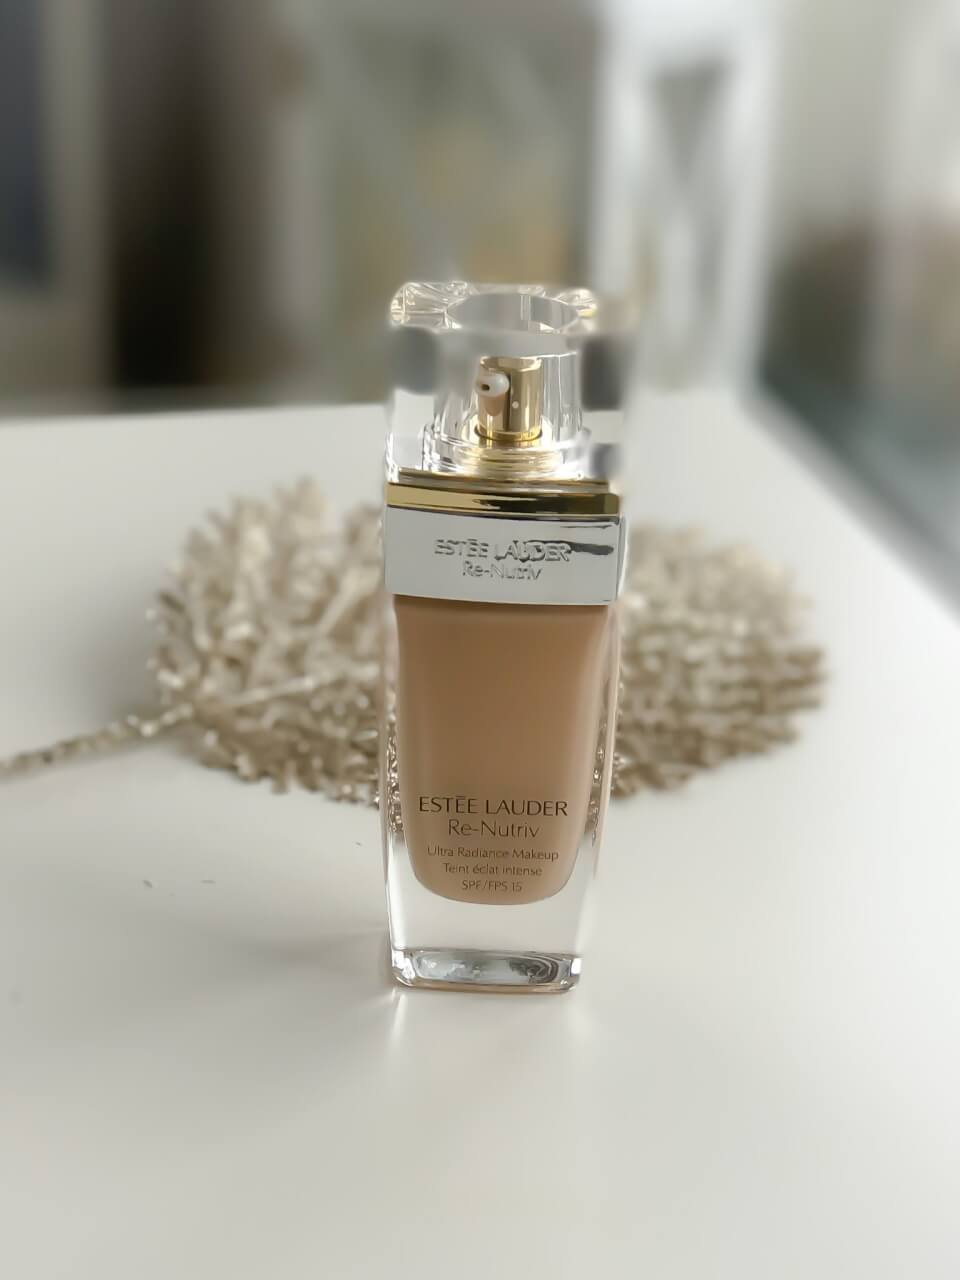 Podkład Estee Lauder Re-Nutriv Ultra Radiance Liquid Makeup